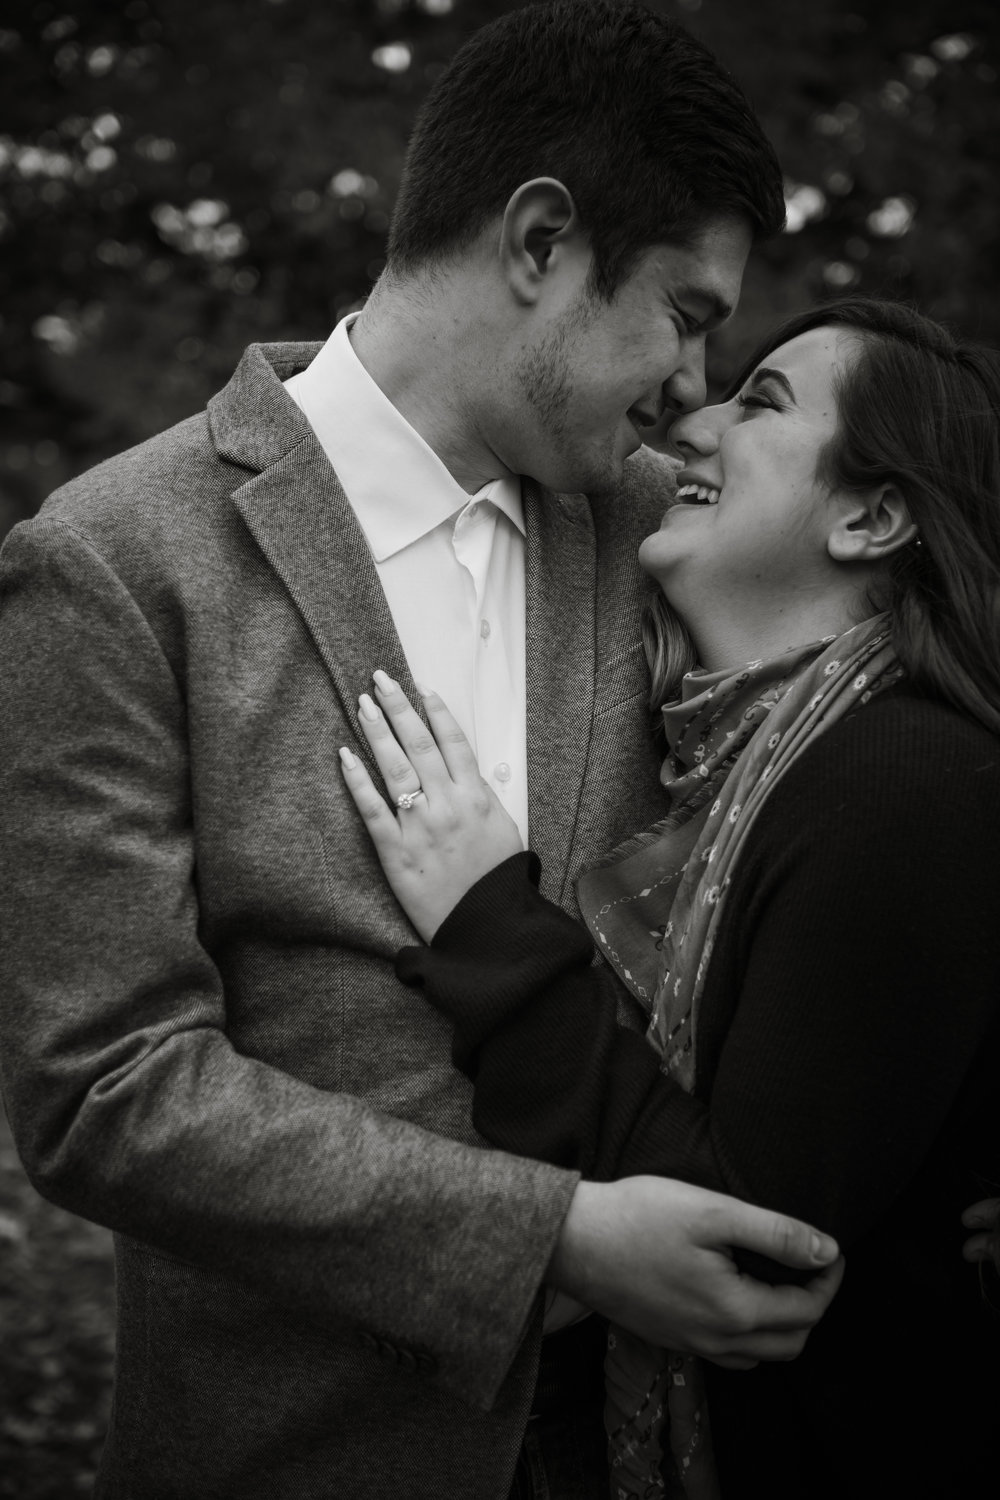 Kate-Alison-Photography-Prospect-Park-Brooklyn-Engagement-Session-Jenna-James-35.jpg